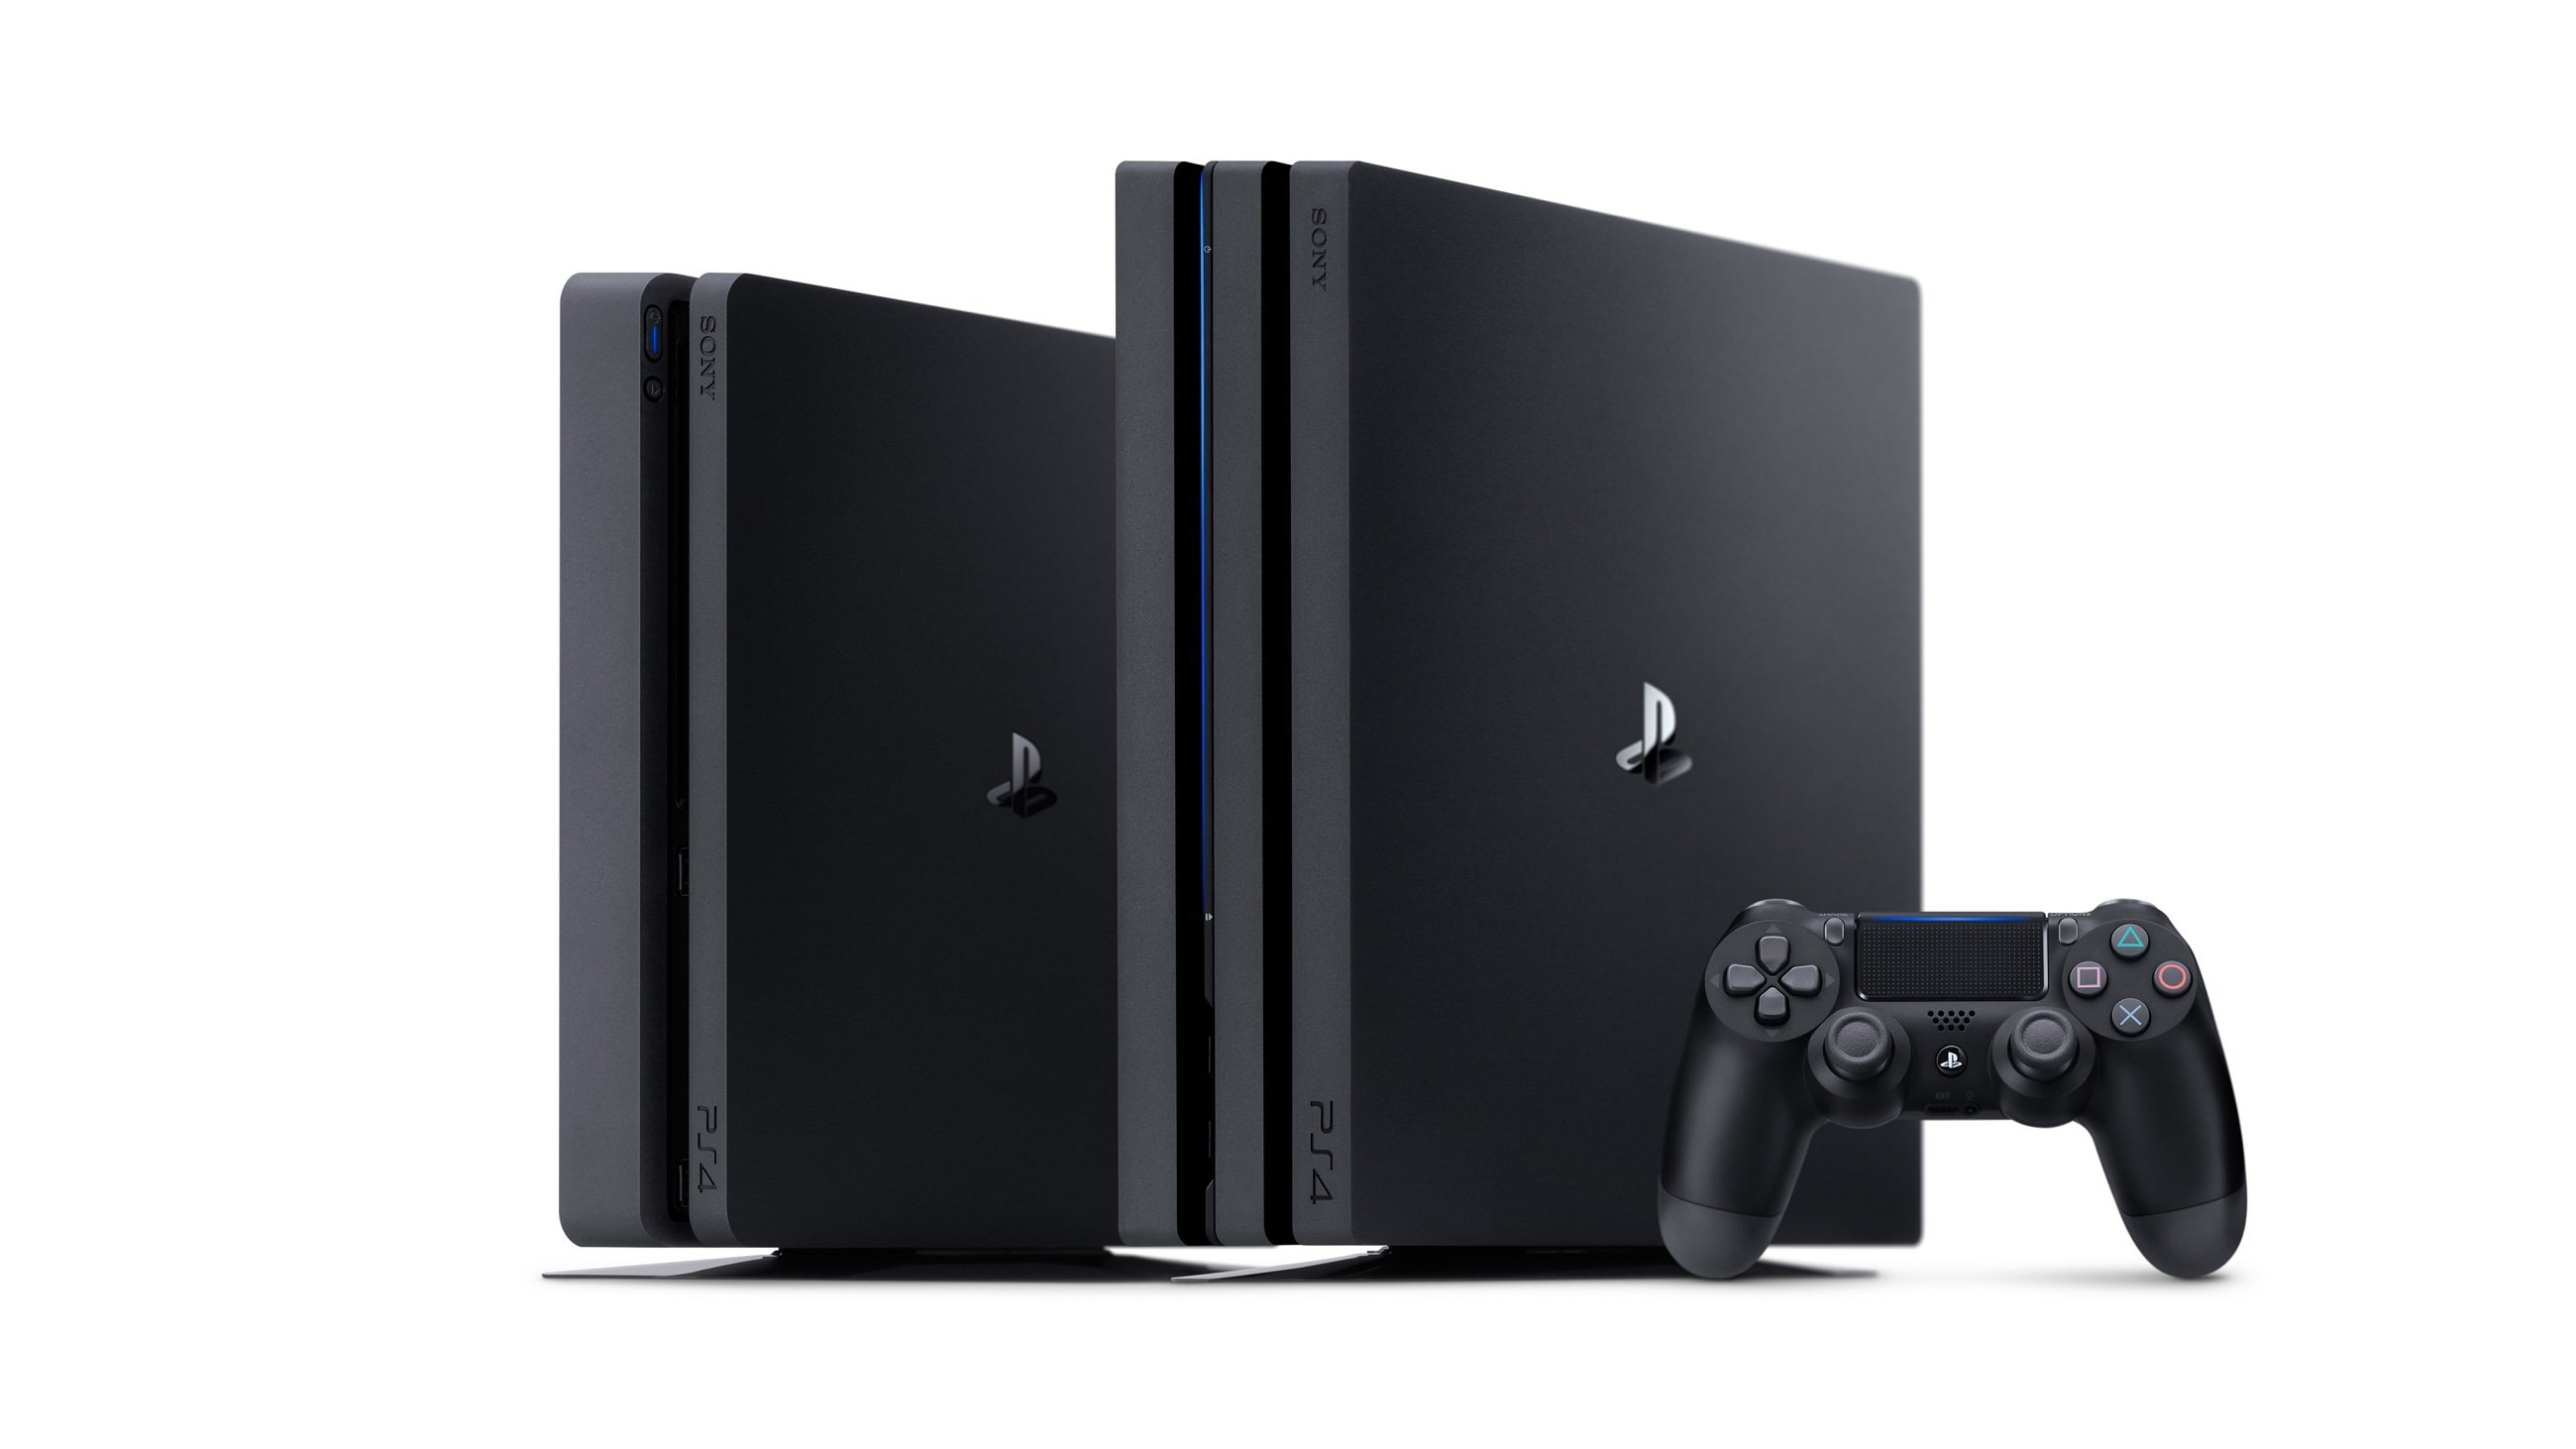 The best PS4 and PS4 Pro deals for Cyber Monday 2018 | AllGamers